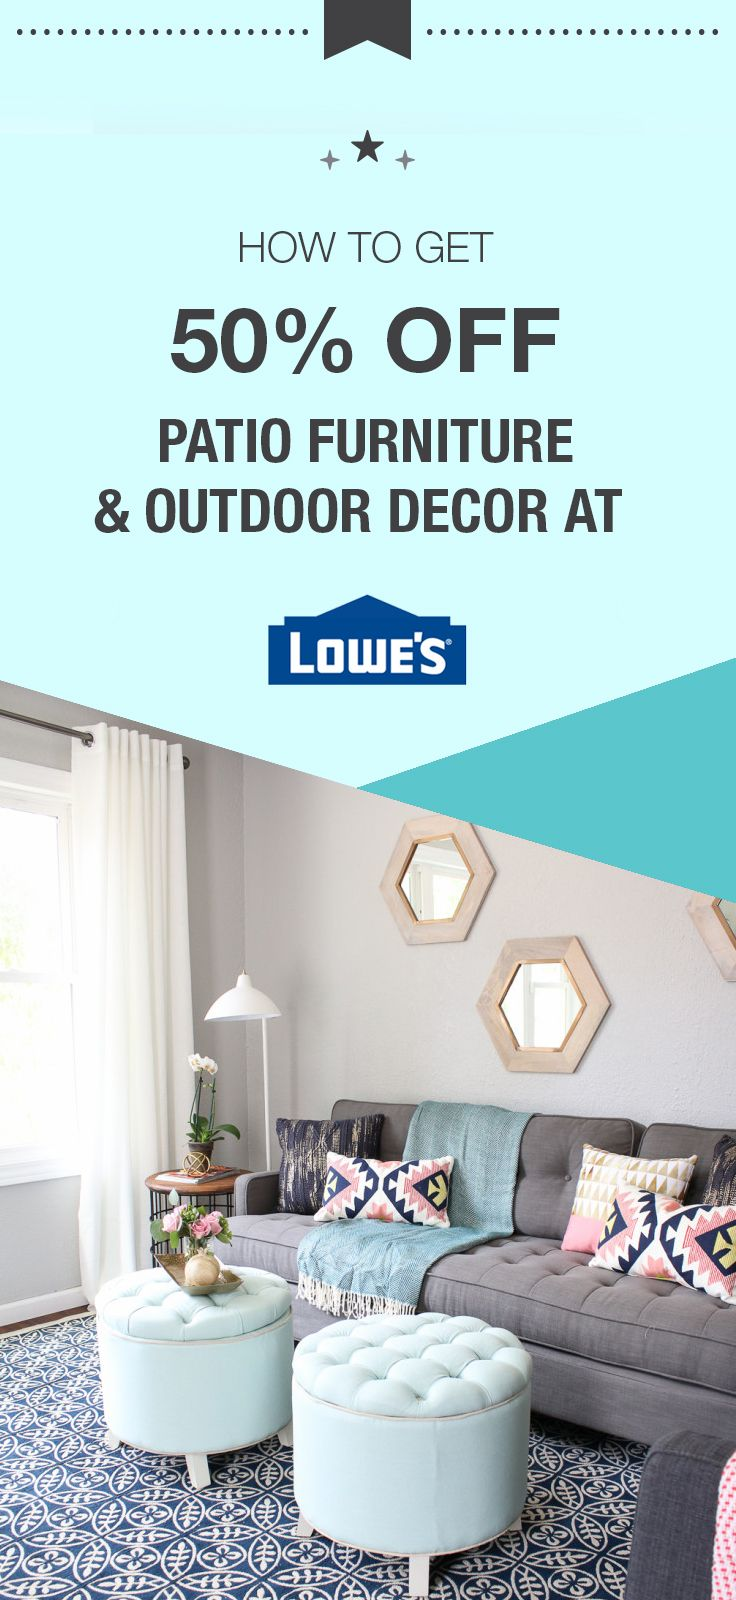 Living Room 50 Off up to 50% off select patio furniture & outdoor decor clearance